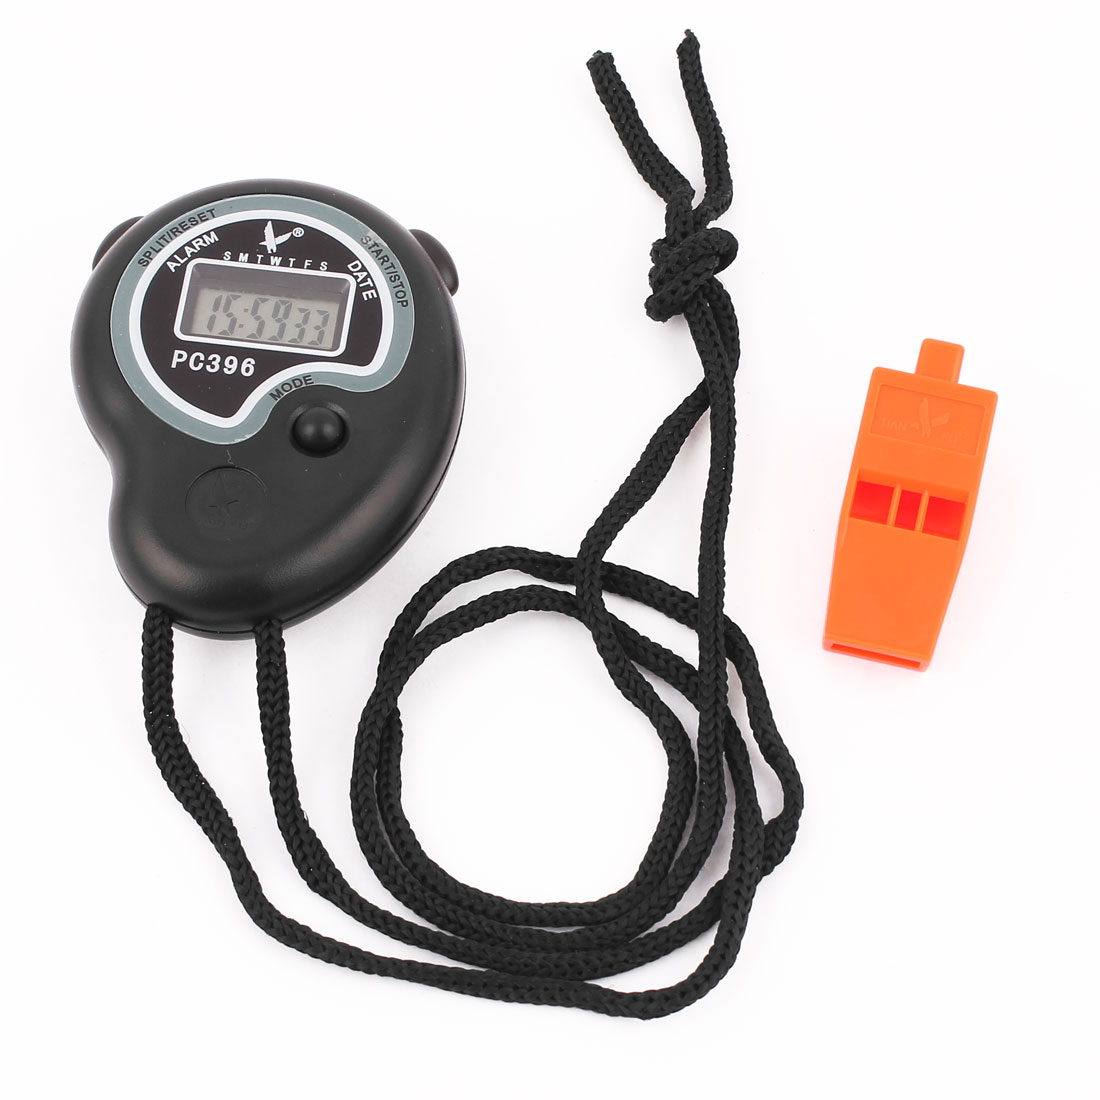 Sports Exercies Training LCD Digital Chronograph Timer Stop Watch Stopwatch Whistle Set 2 in 1